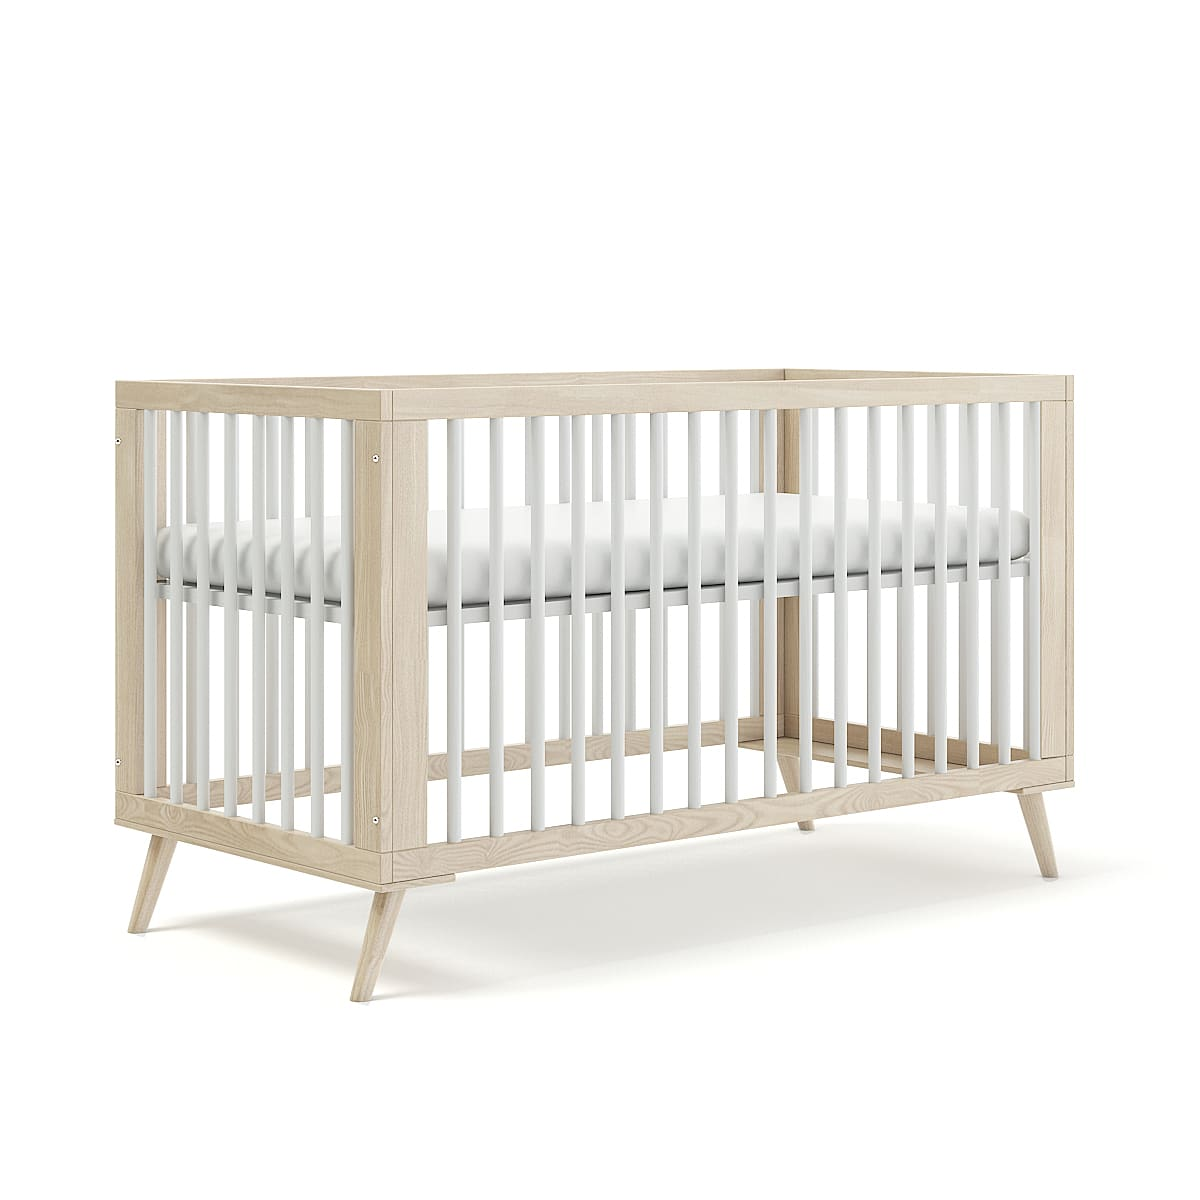 Wooden Baby Bed Cgaxis 3d Models Store